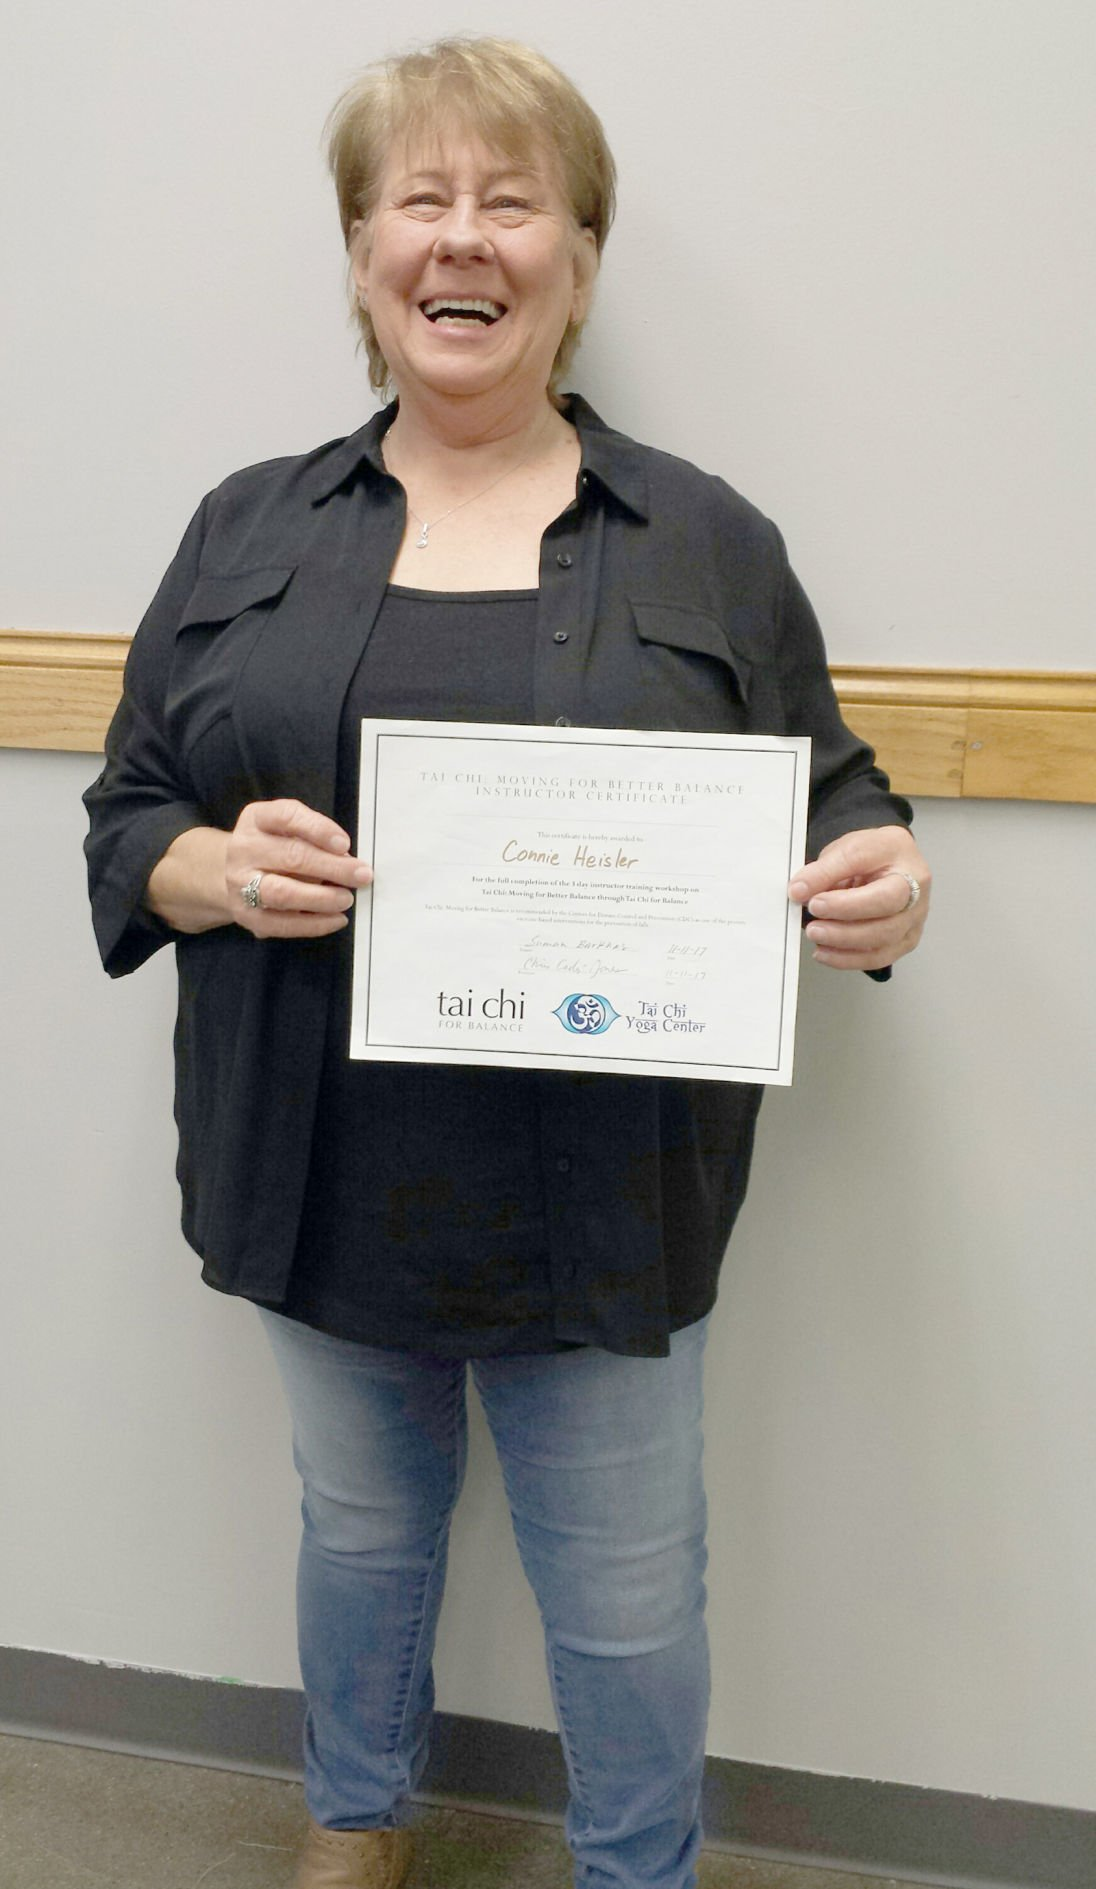 Connie standing with certificate